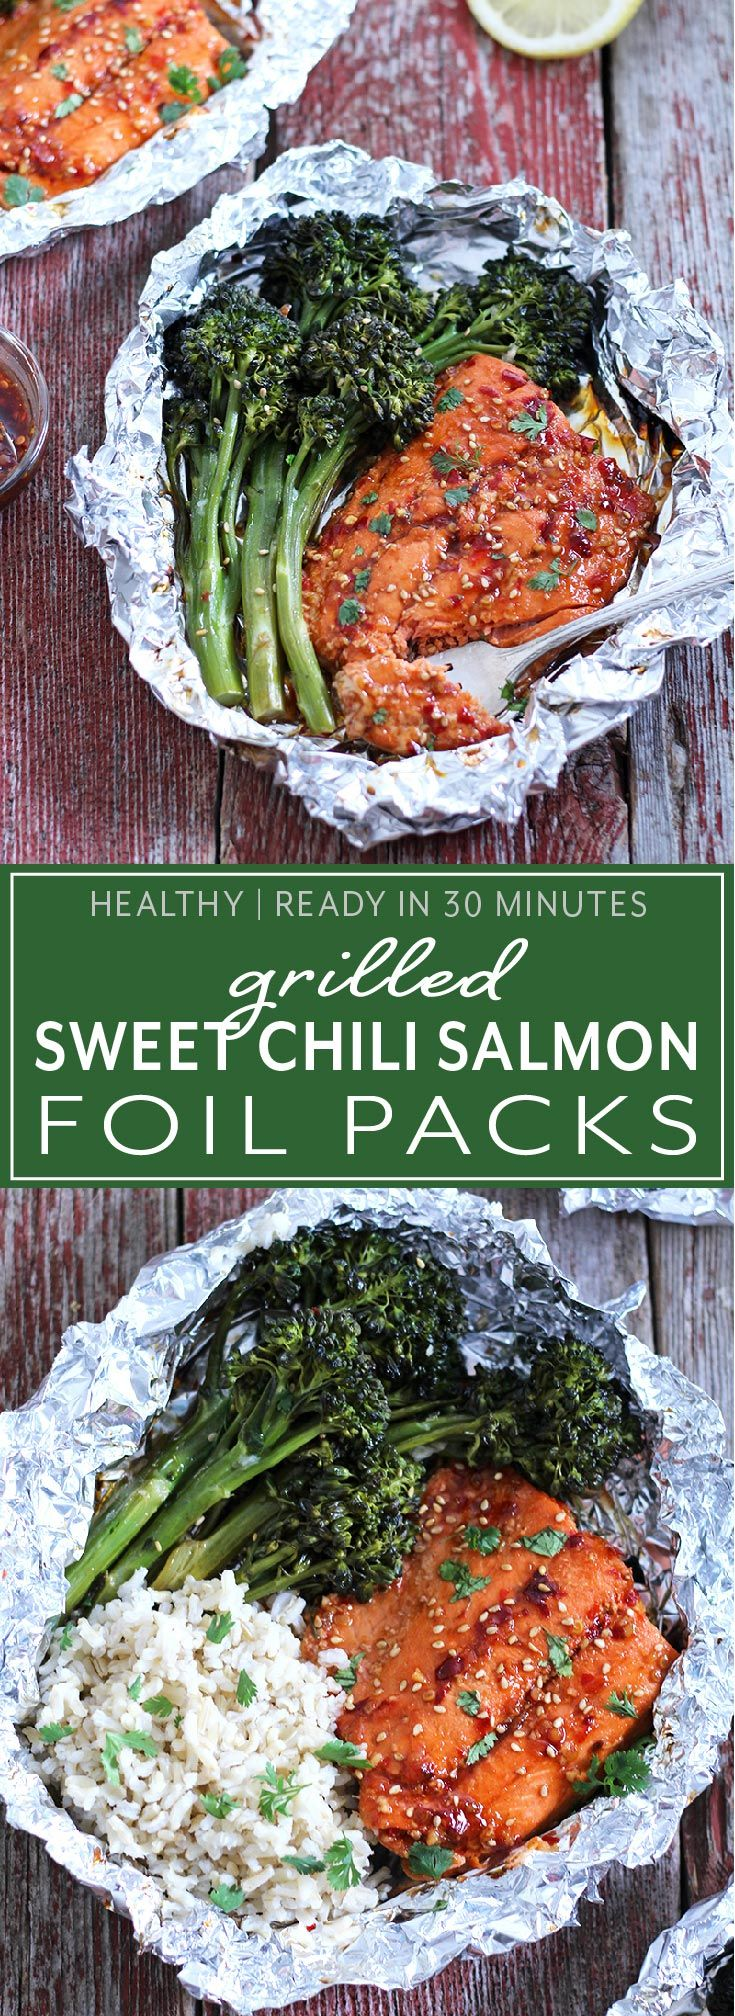 Photo of Grilled Sweet Chili Salmon Foil Packs | Modern Farmhouse Eats